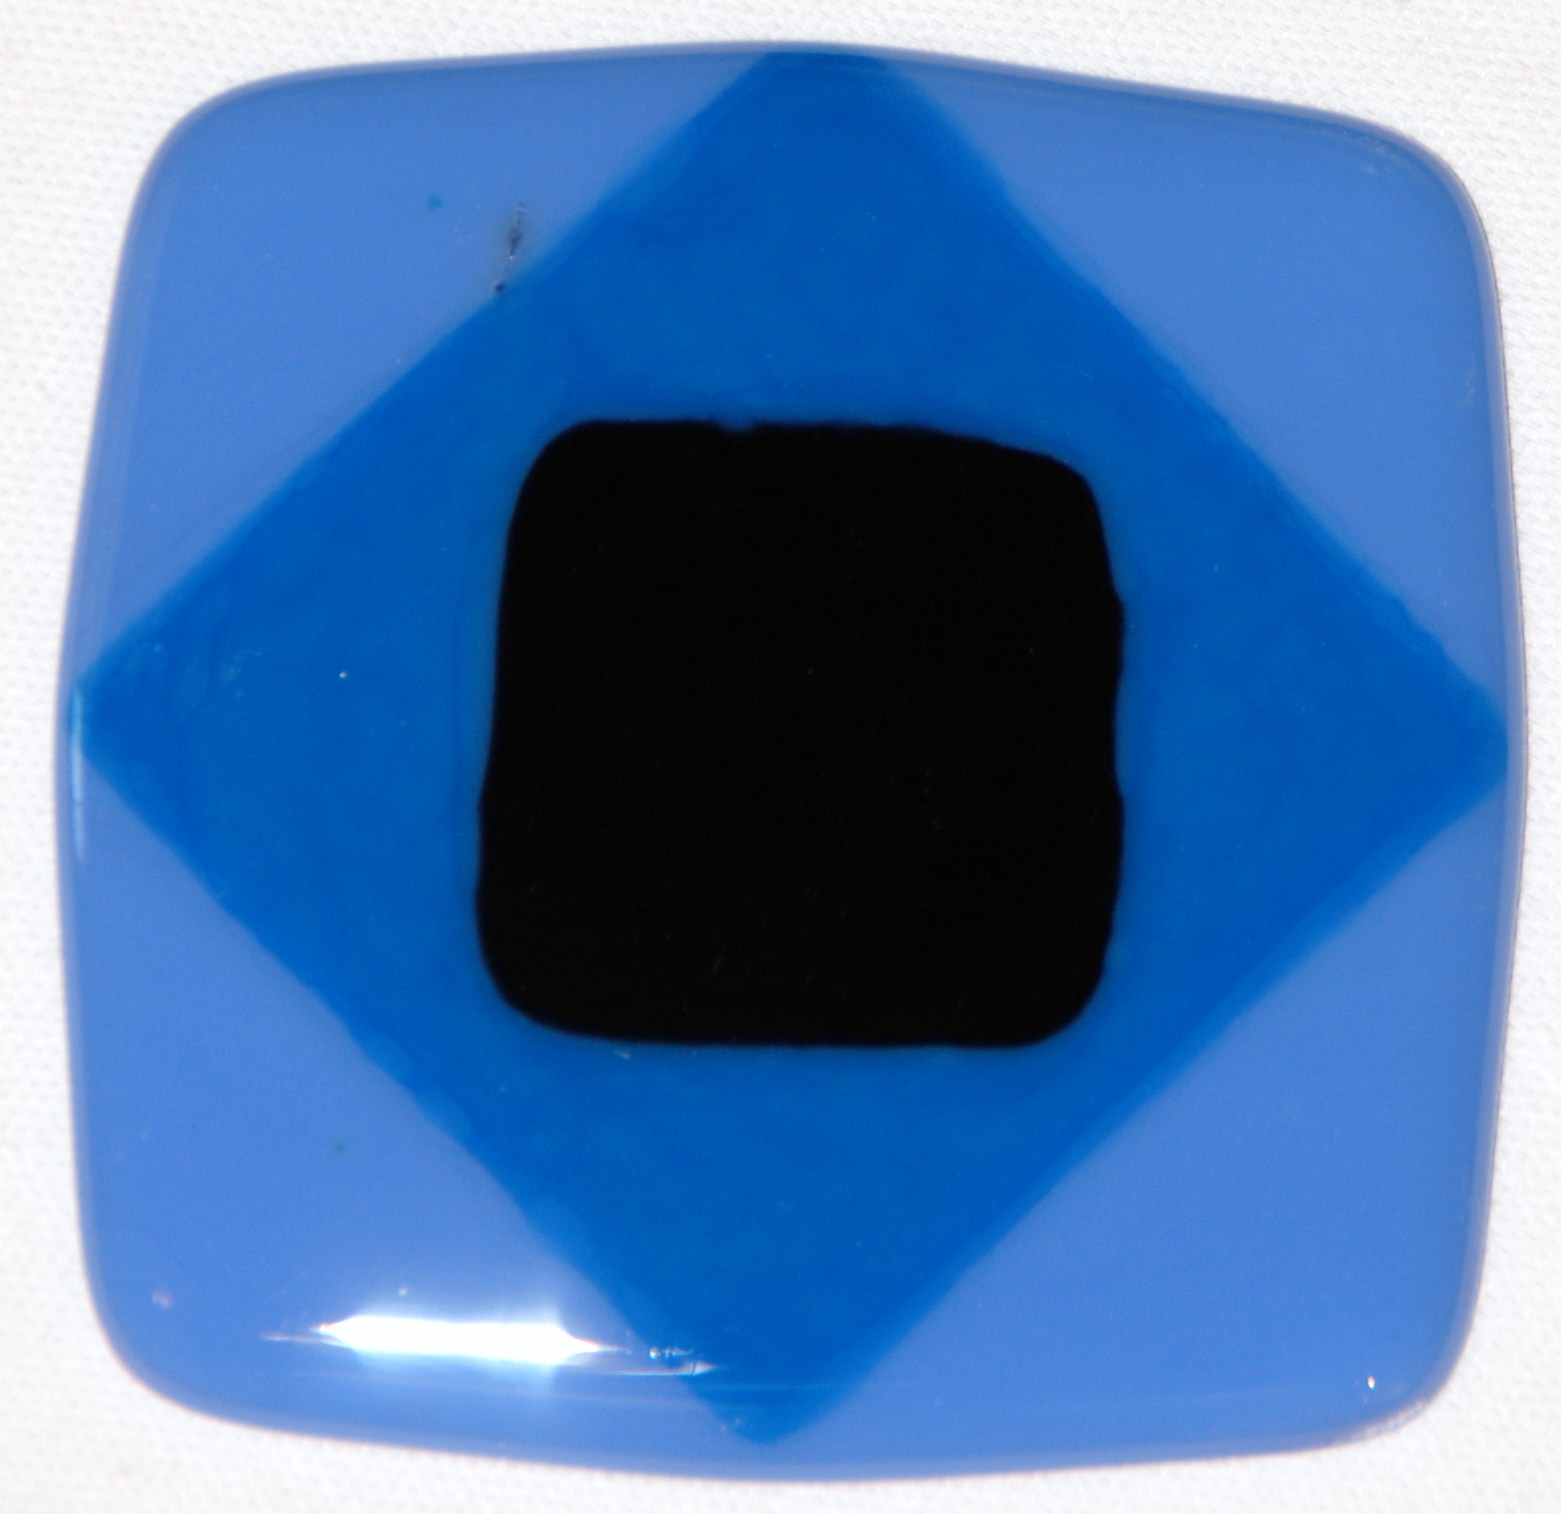 Craftsman fused glass diamond tile in periwinkle, sky blue, and black